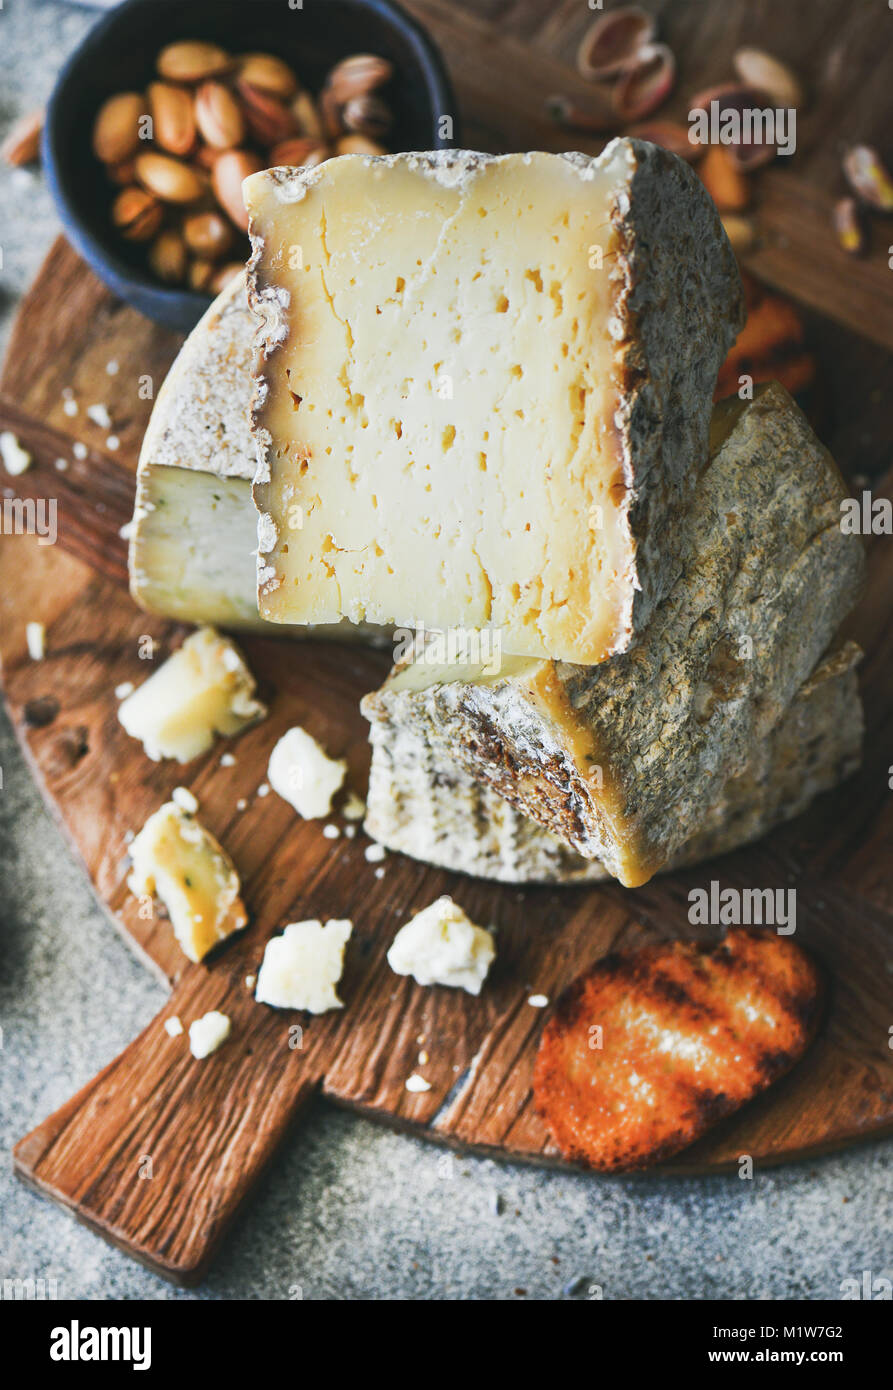 Cheese platter with nuts, honey and bread, close-up - Stock Image